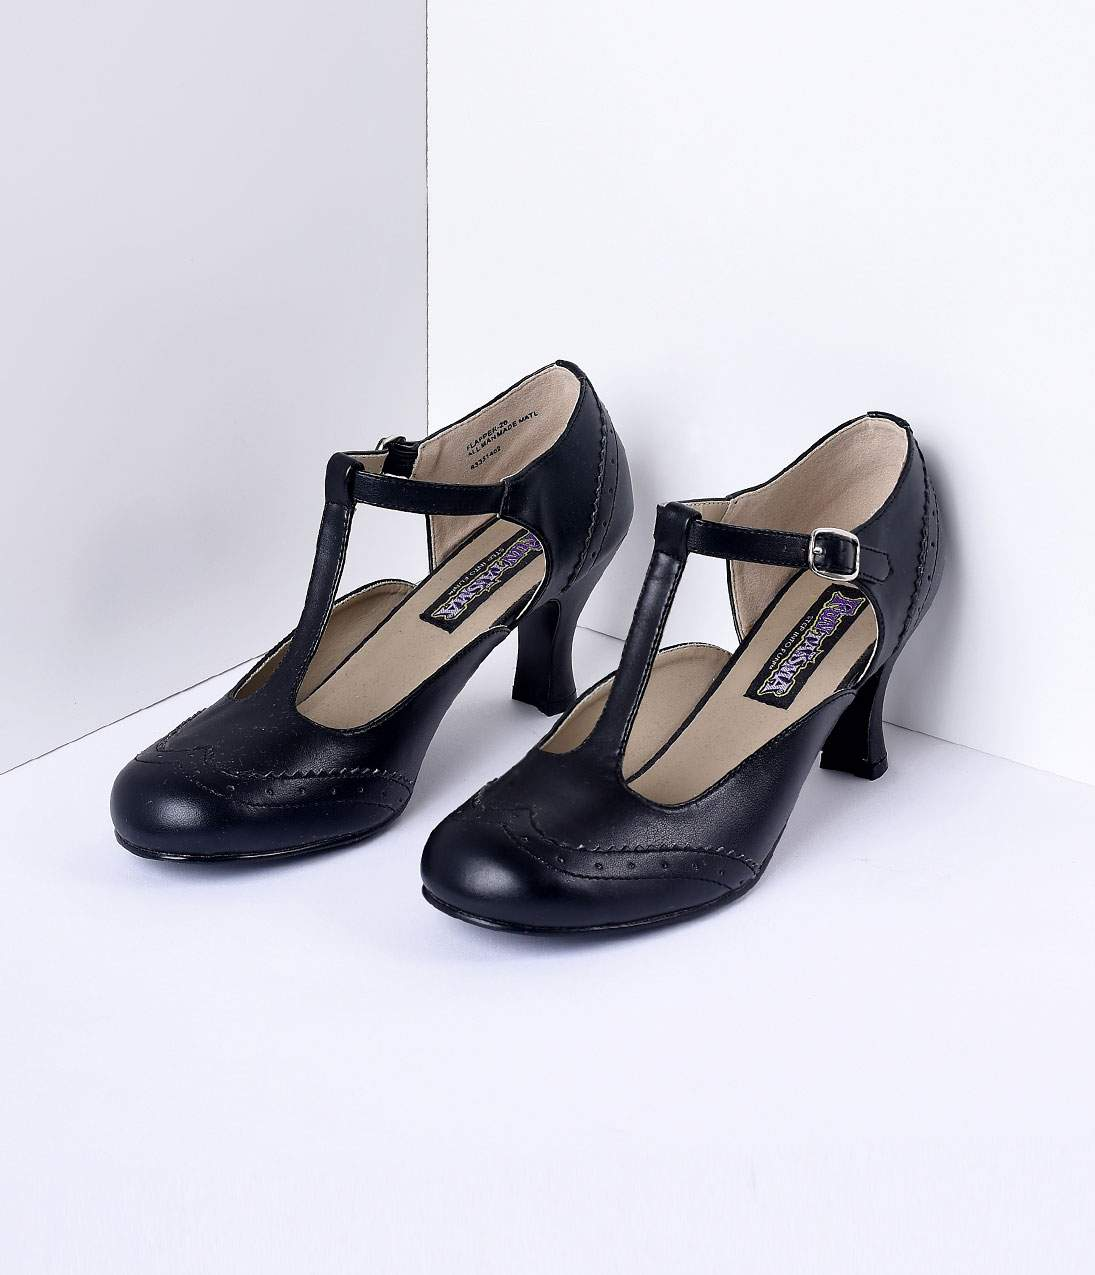 Adult Baby Wearing Strap Shoes - Naked Photo-7497